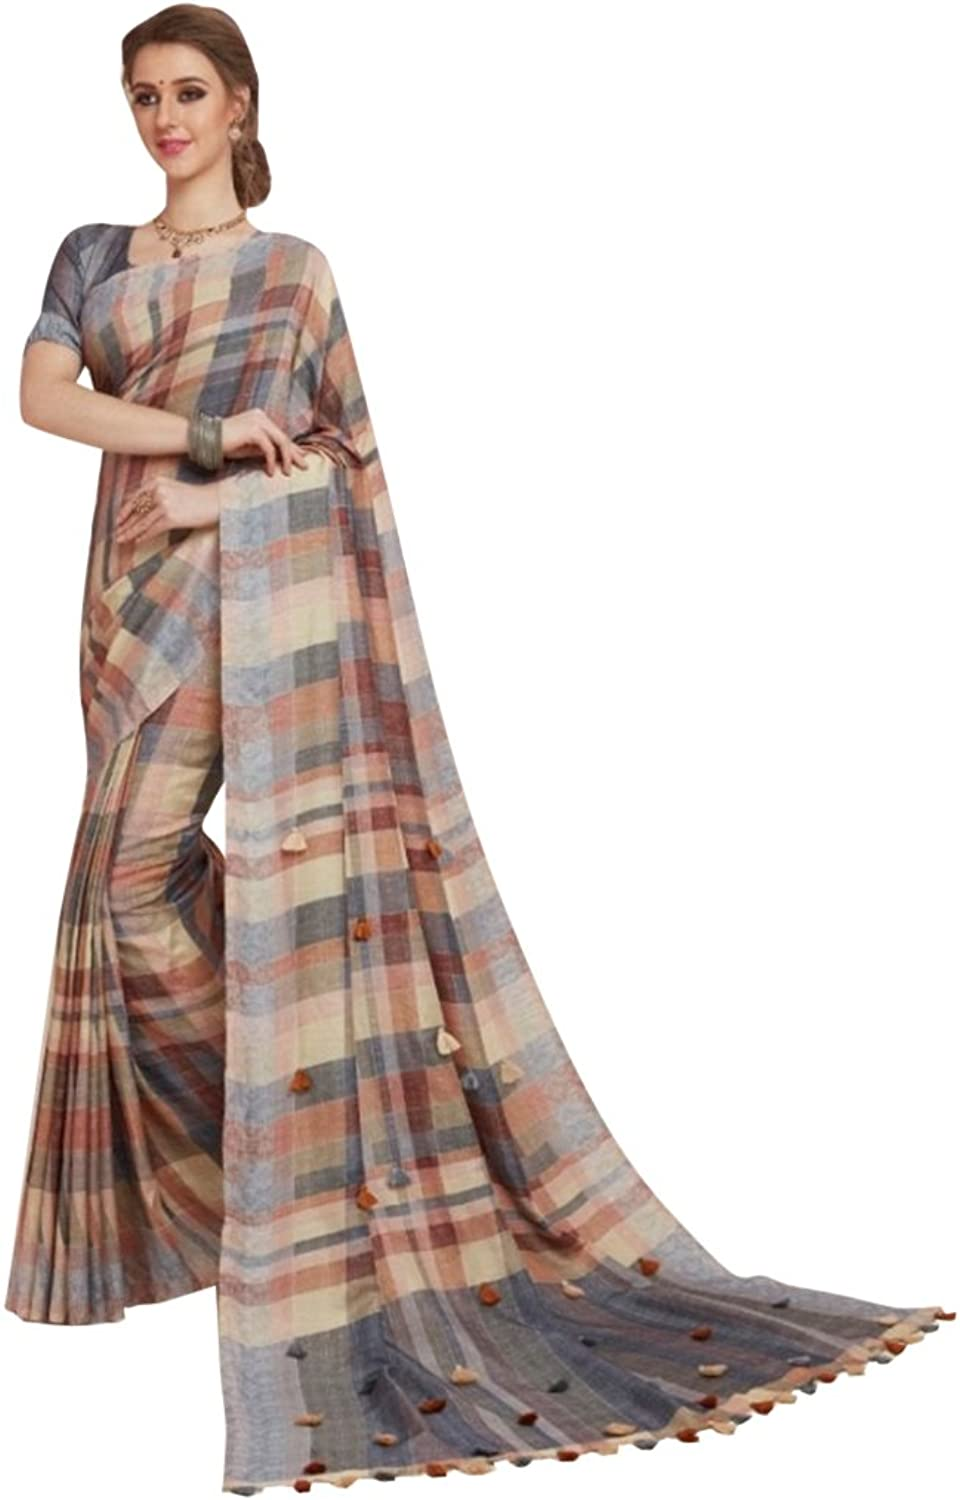 Designer Bollywood Saree Sari for Women Latest Indian Ethnic Collection Blouse Party Wear Festive Ceremony 896 10